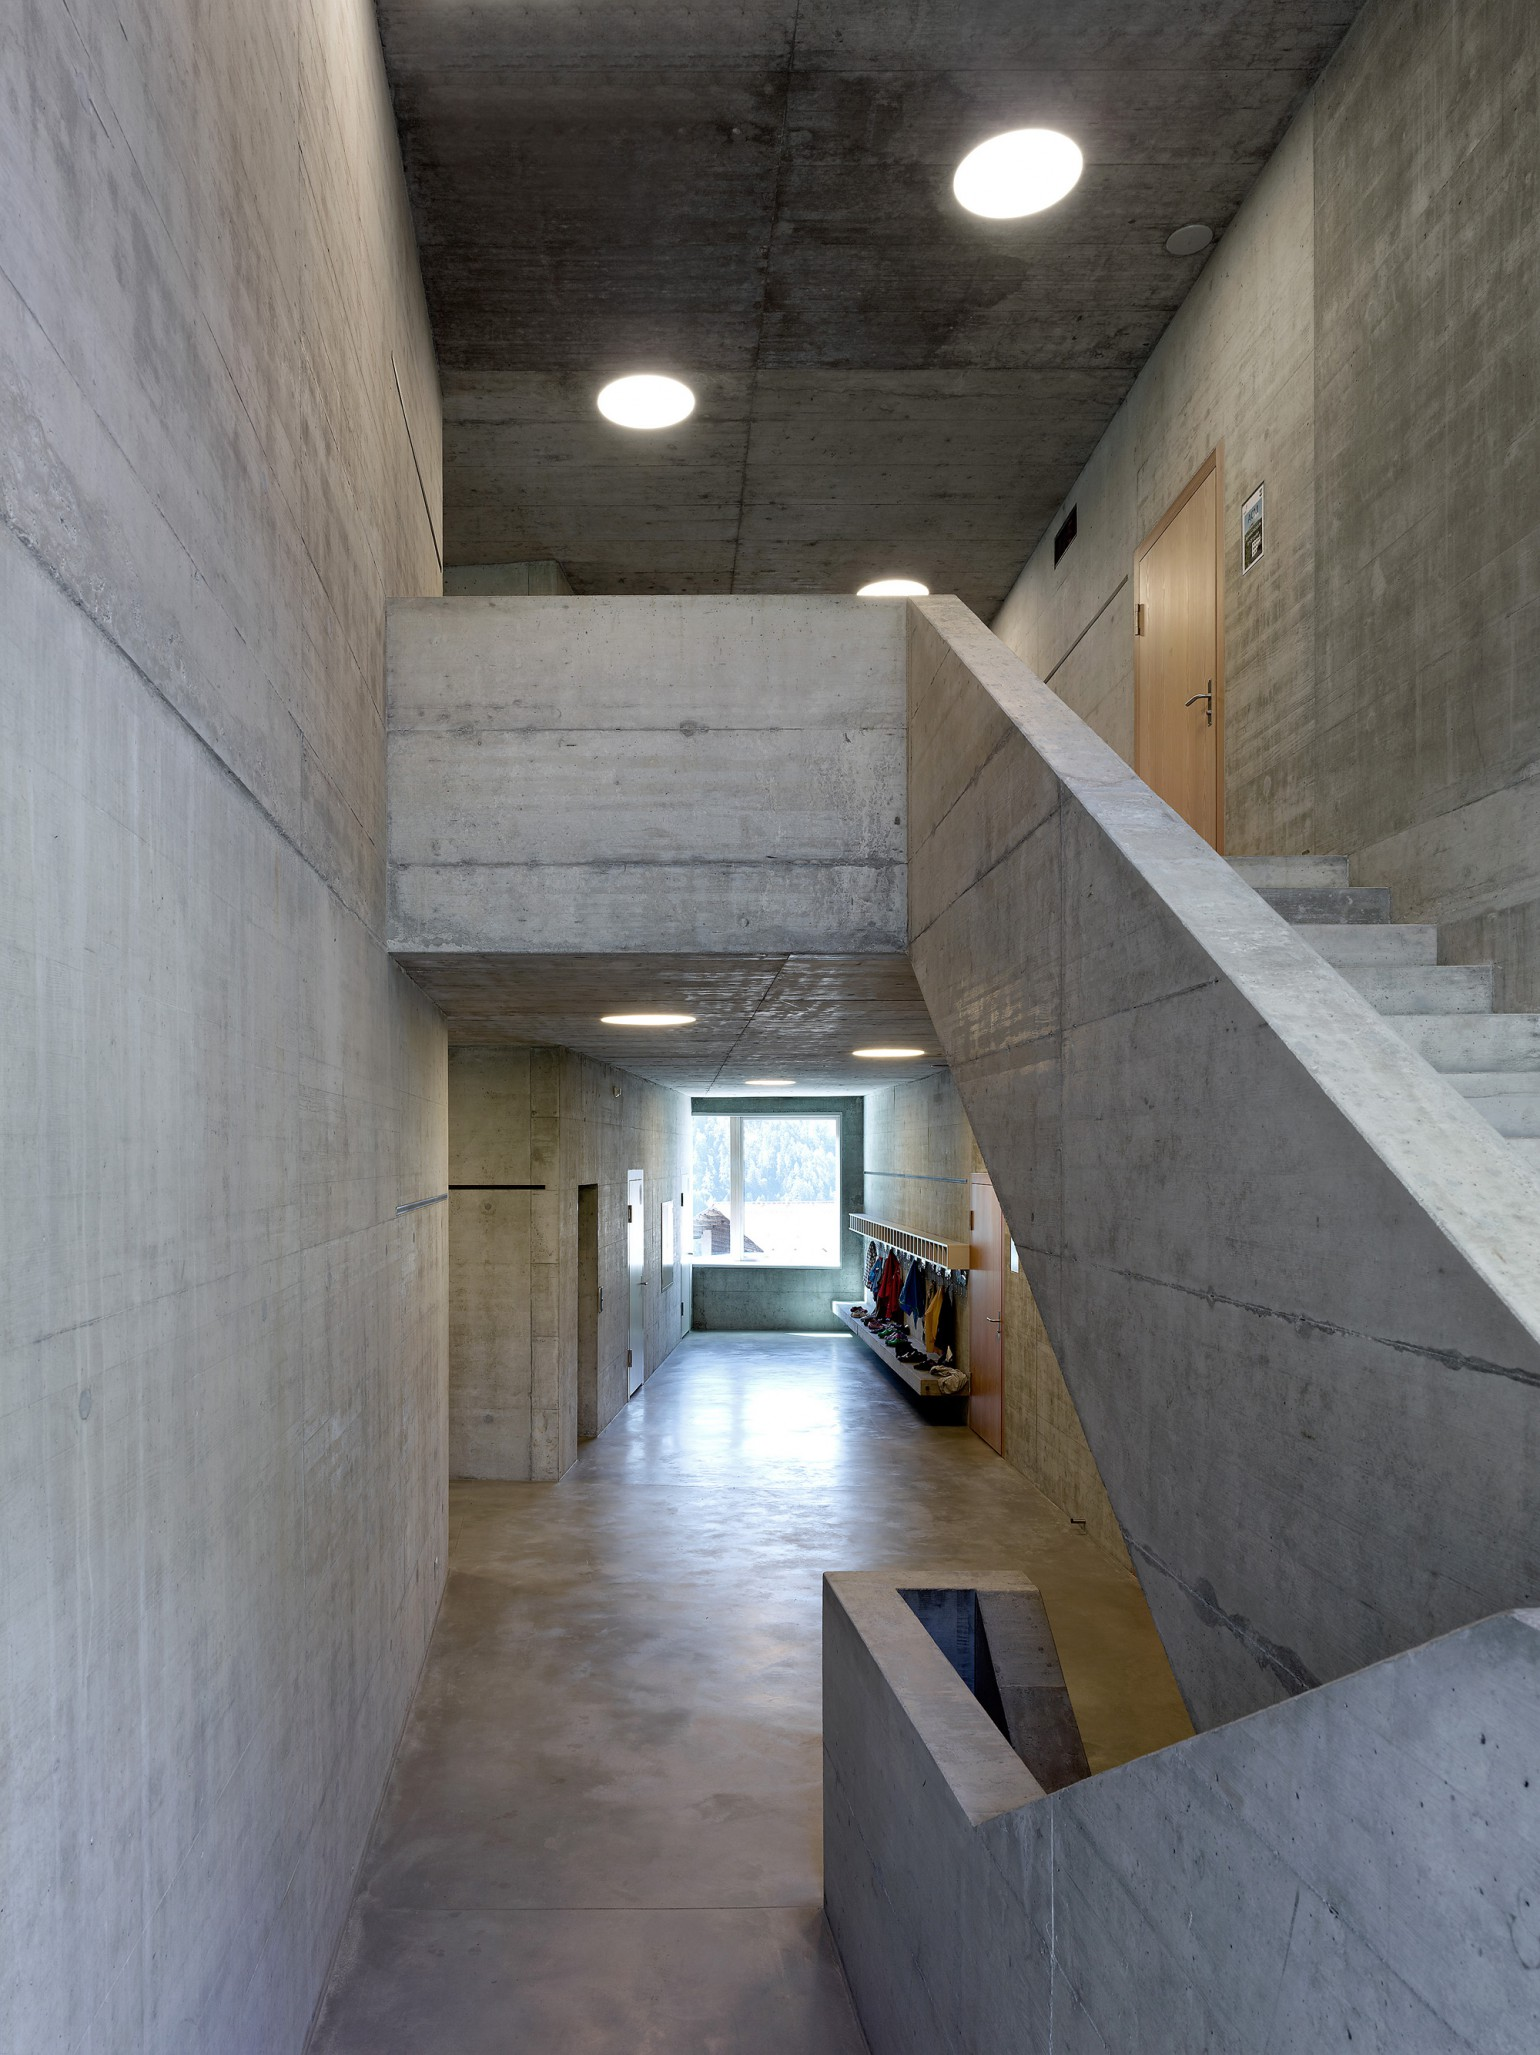 ecole_primaire_volleges_meyer_architecture_sion_04